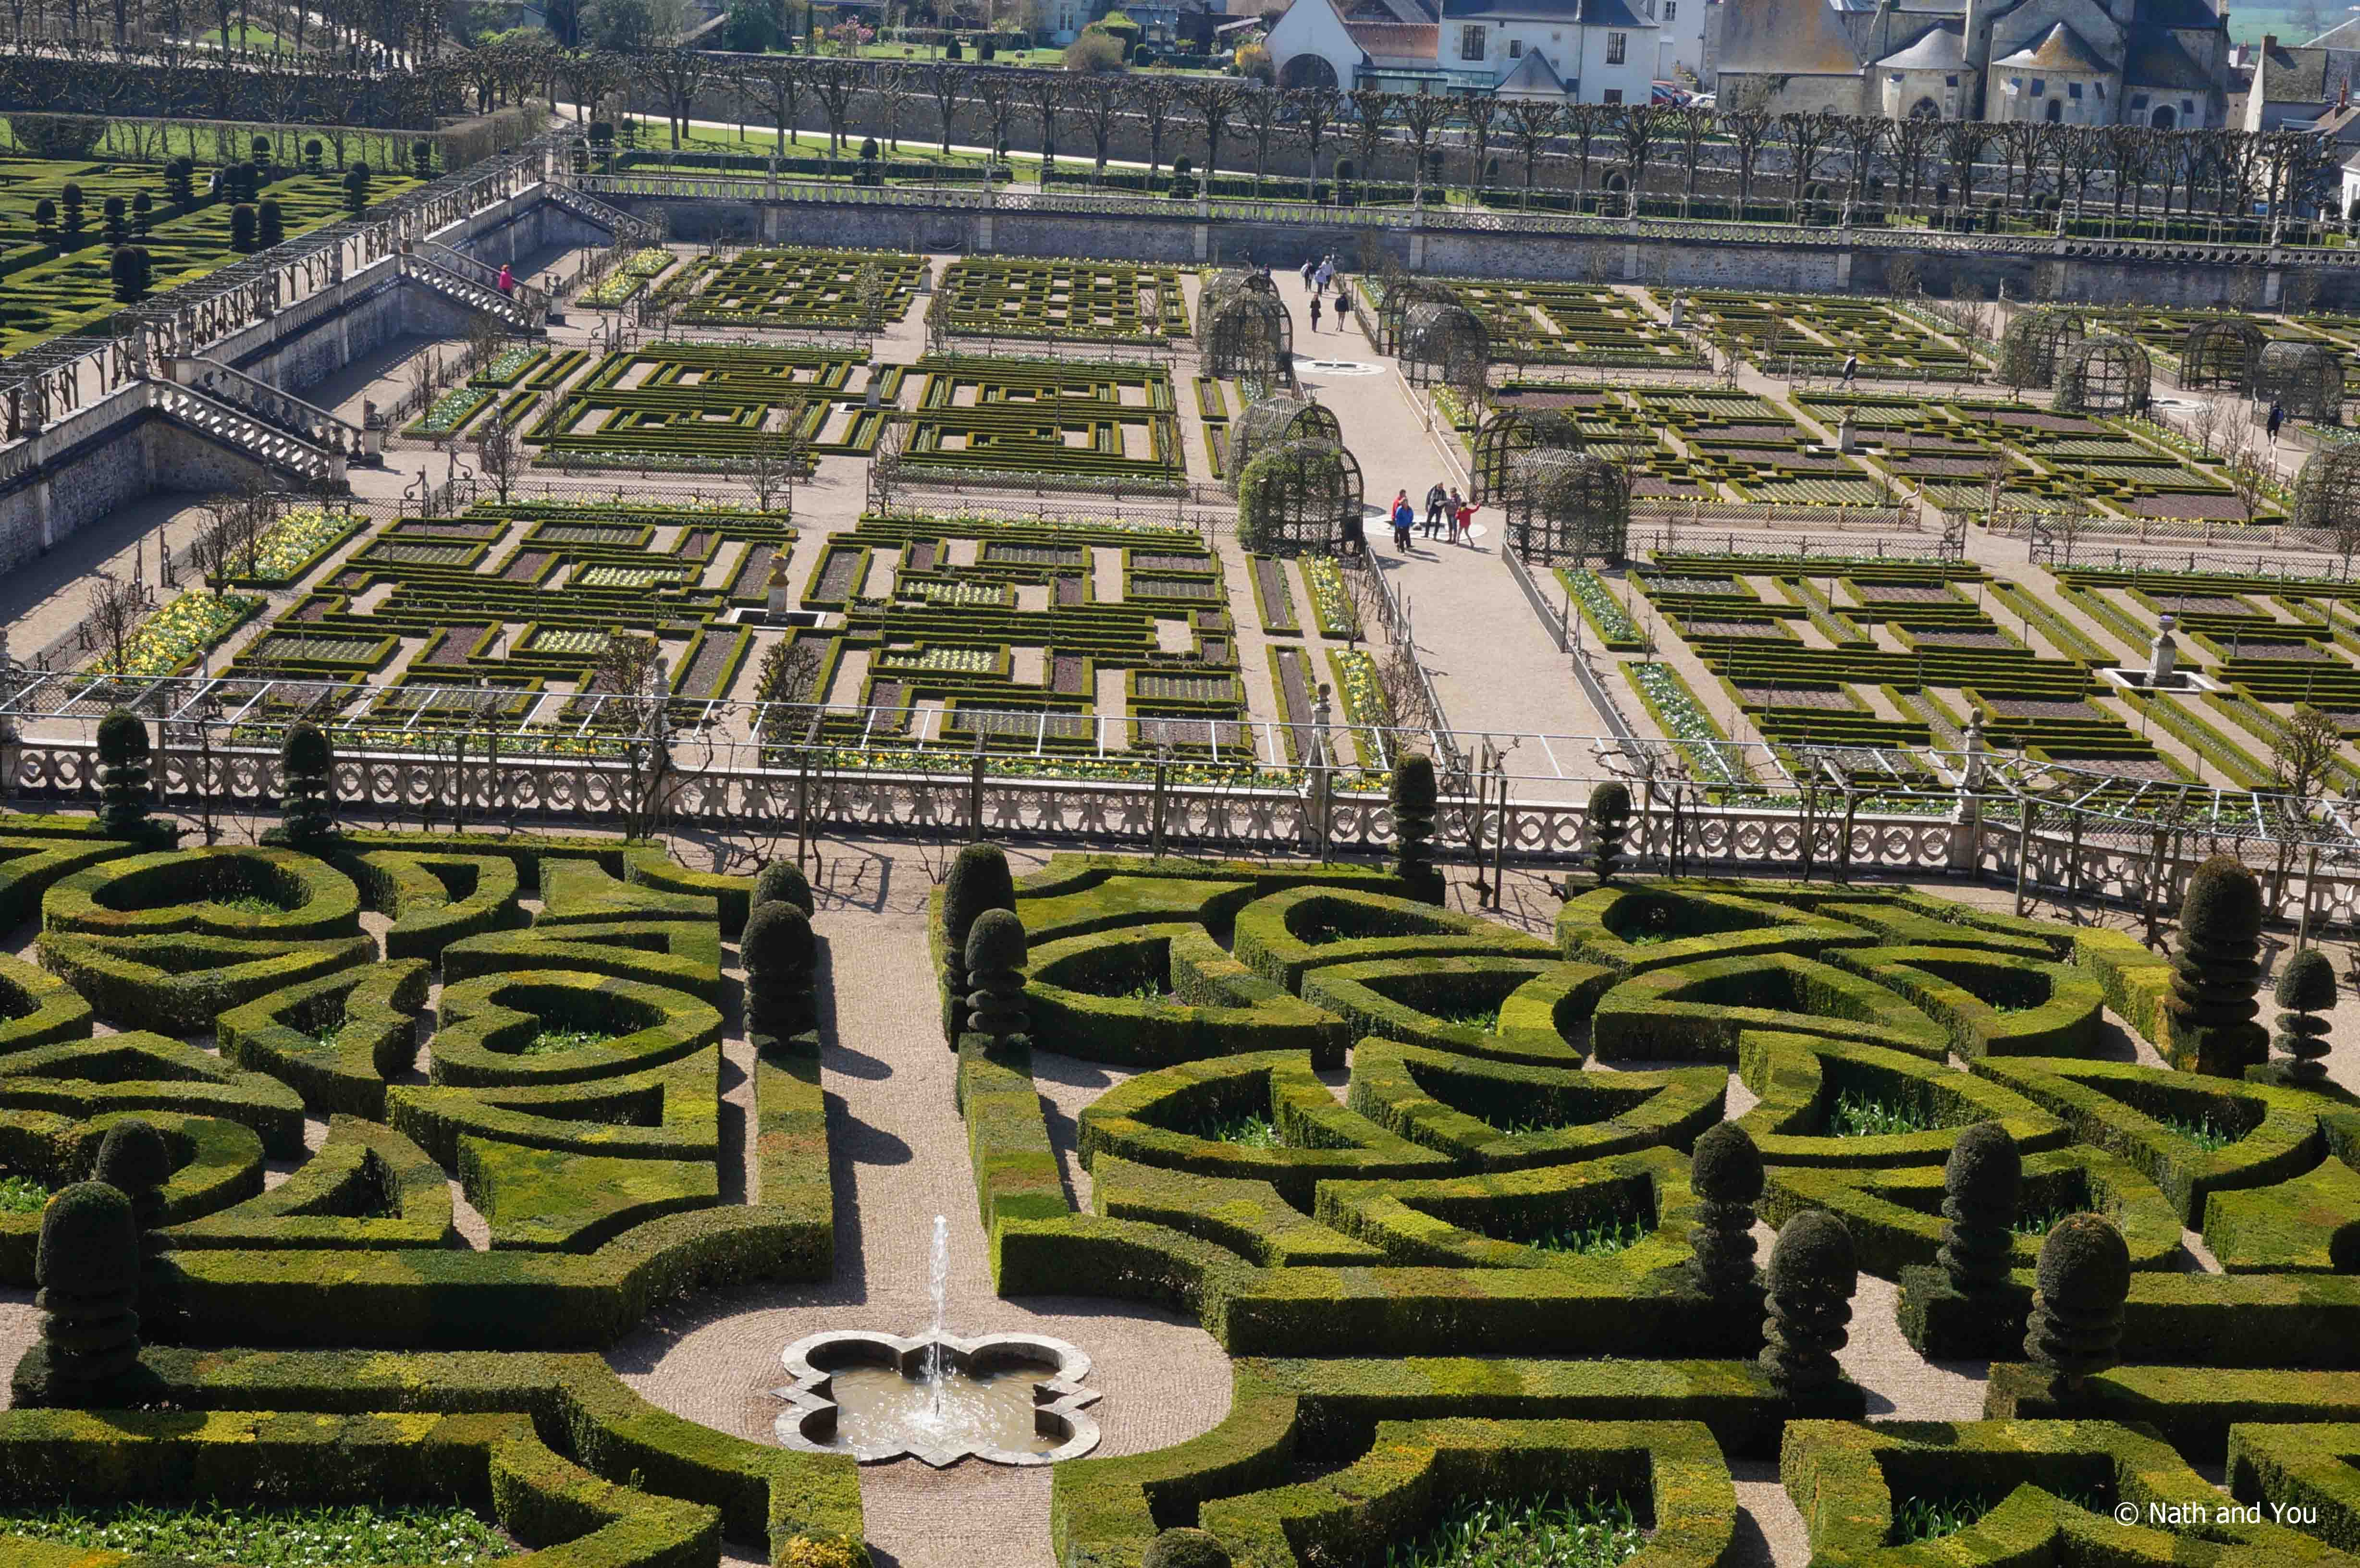 Villandry-10-Chateaux-Loire-Nath-and-you